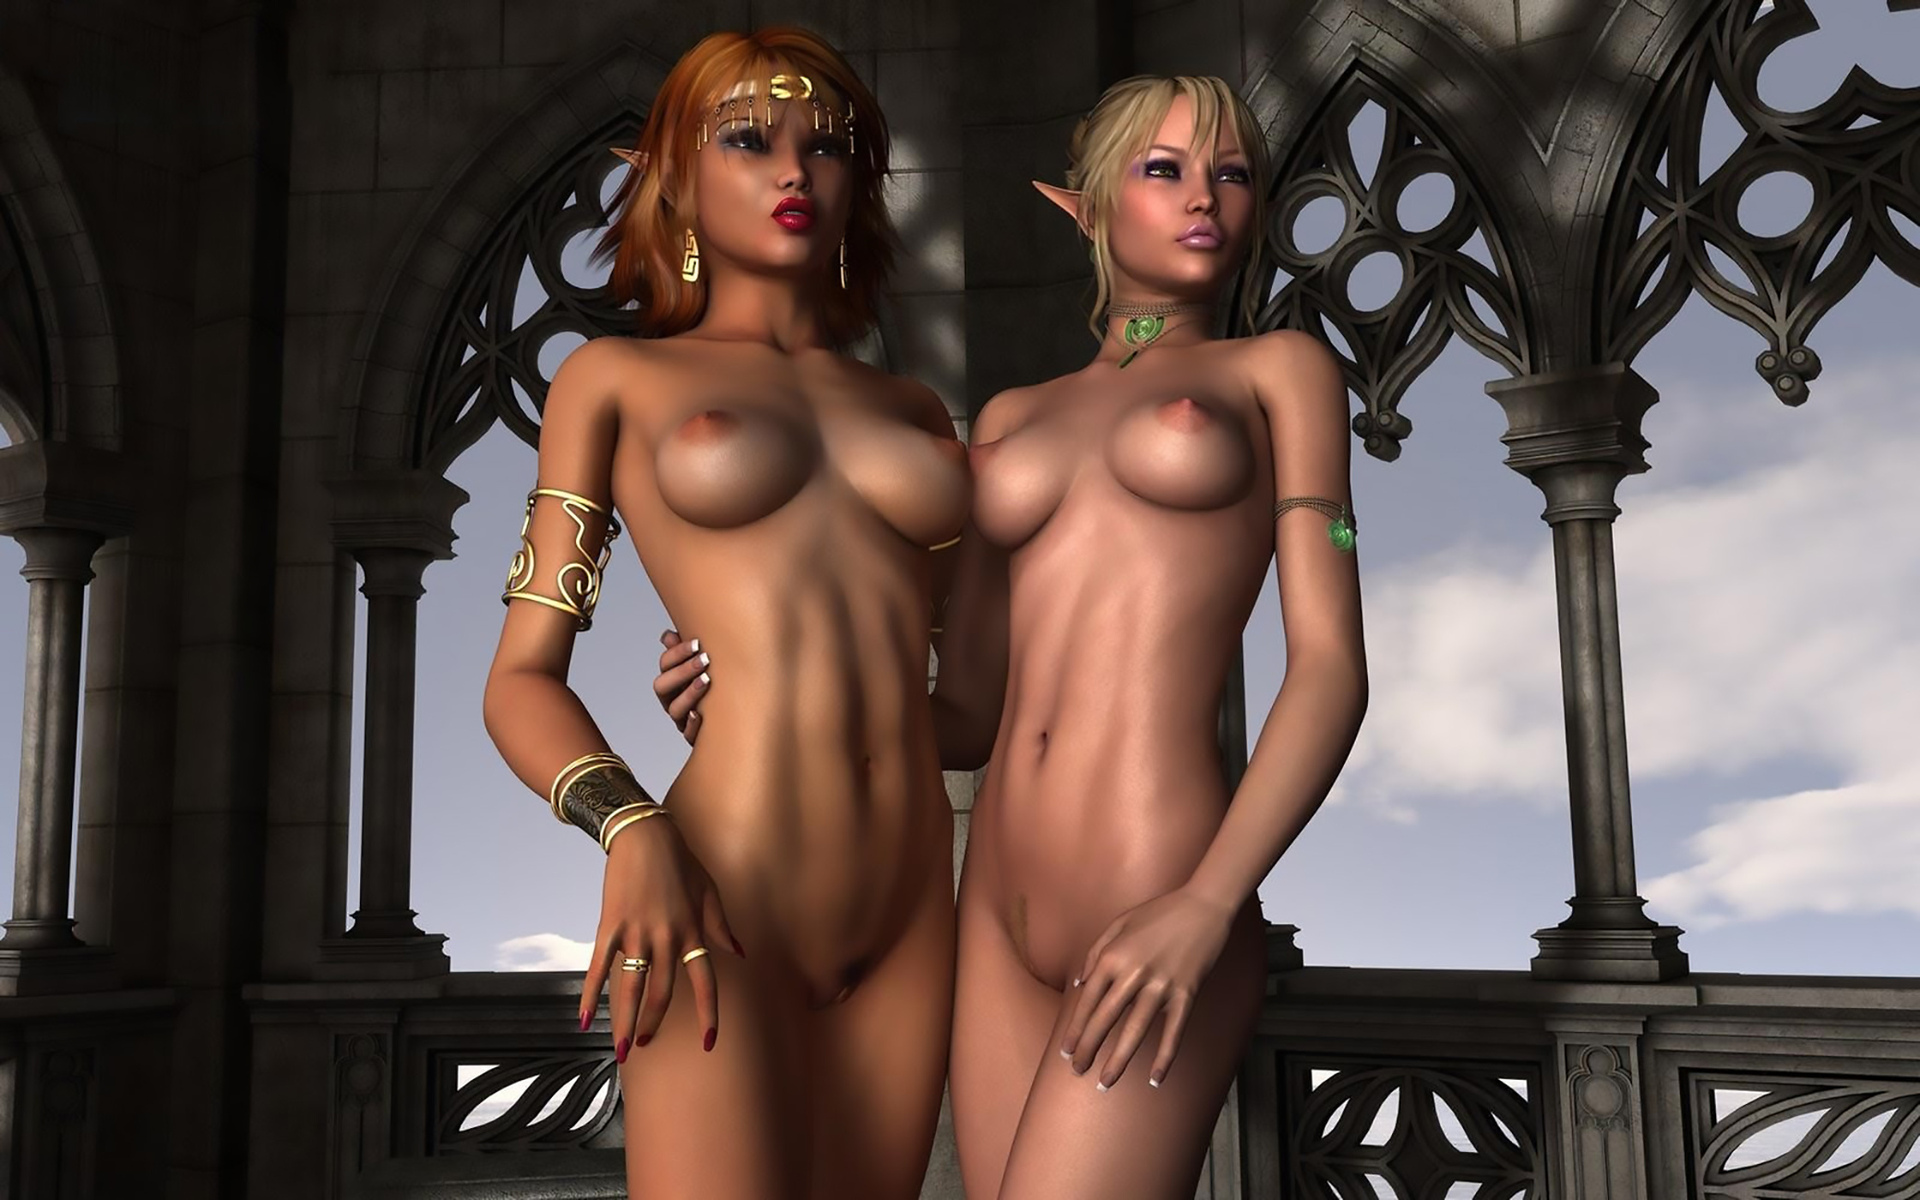 World of porncraft free for android nude pics